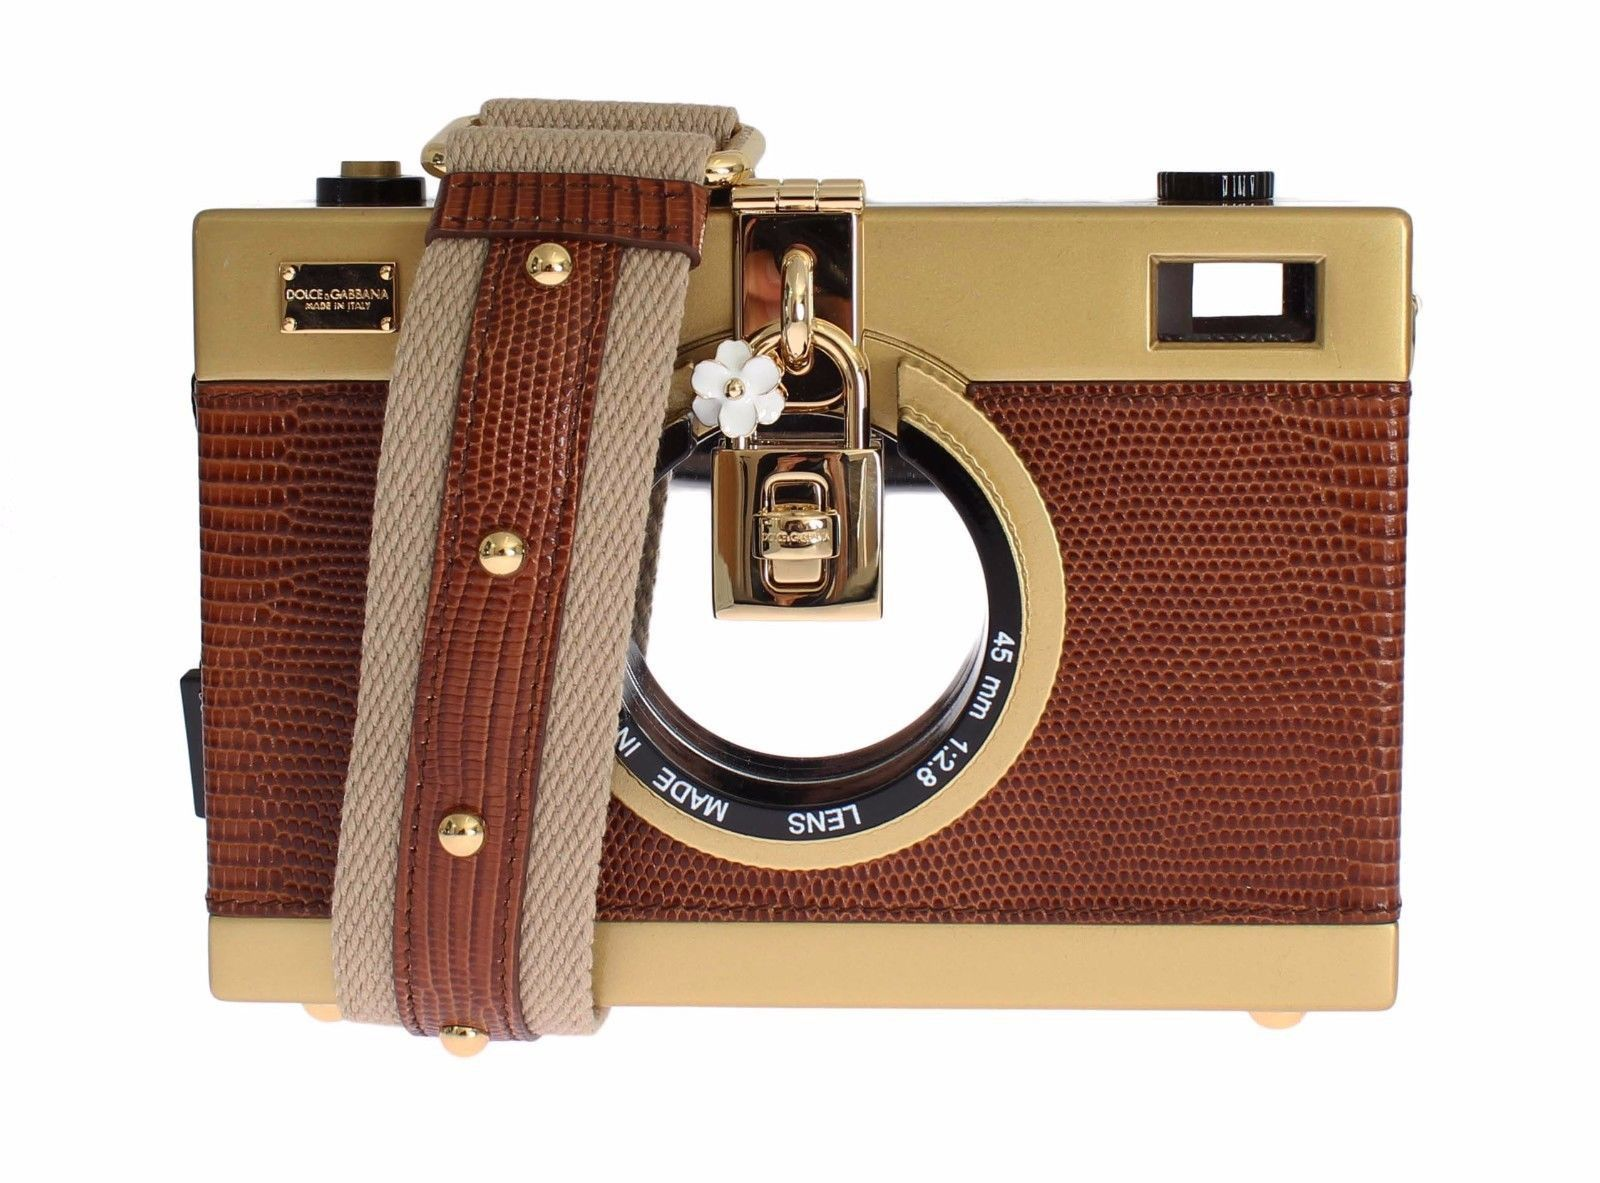 845fc5dc8d Absolutely Stunning Dolce & Gabbana Camera Case Brown Leather Gold ...